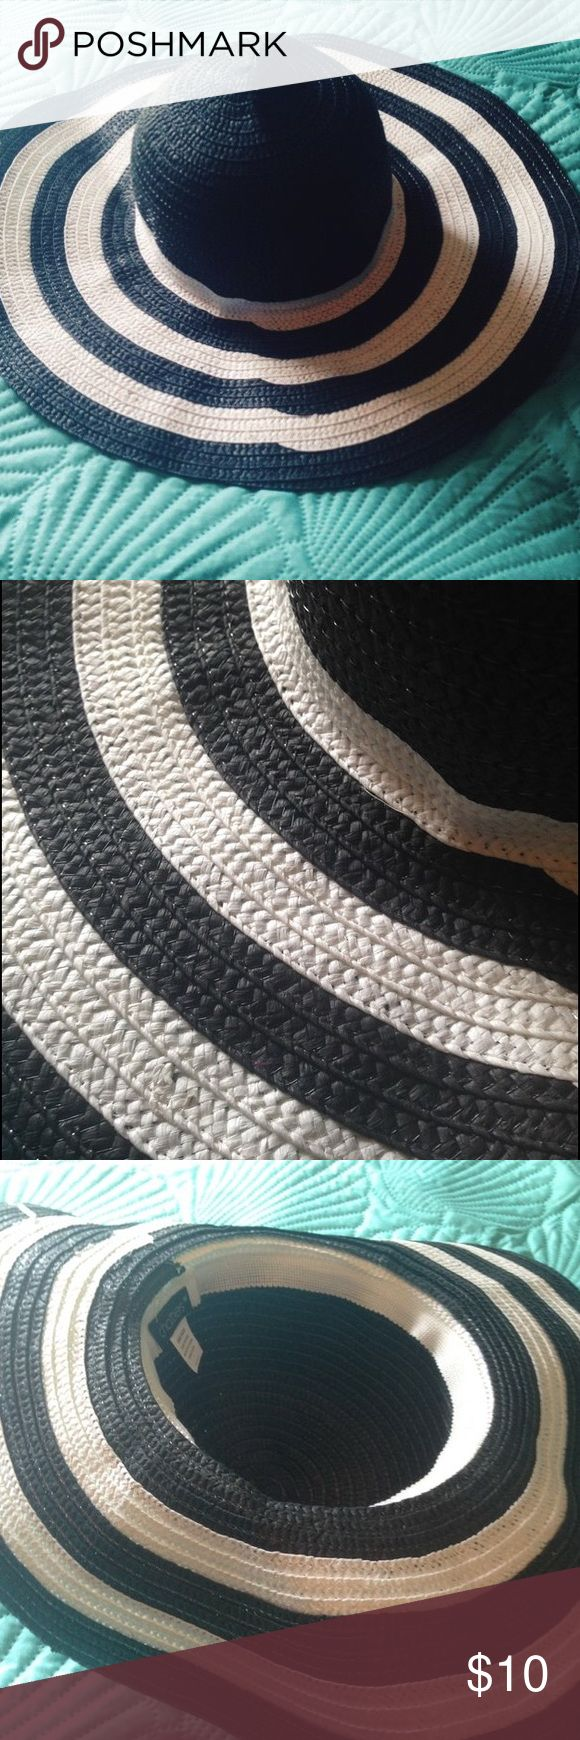 Stripe wide brim floppy beach hat Stripe beach style floppy hat. One size fits all. Worn maybe twice. In great condition. I just never got around to wearing it much. It's great for keeping the sun out of your eyes and face at the beach or gardening. Accessories Hats